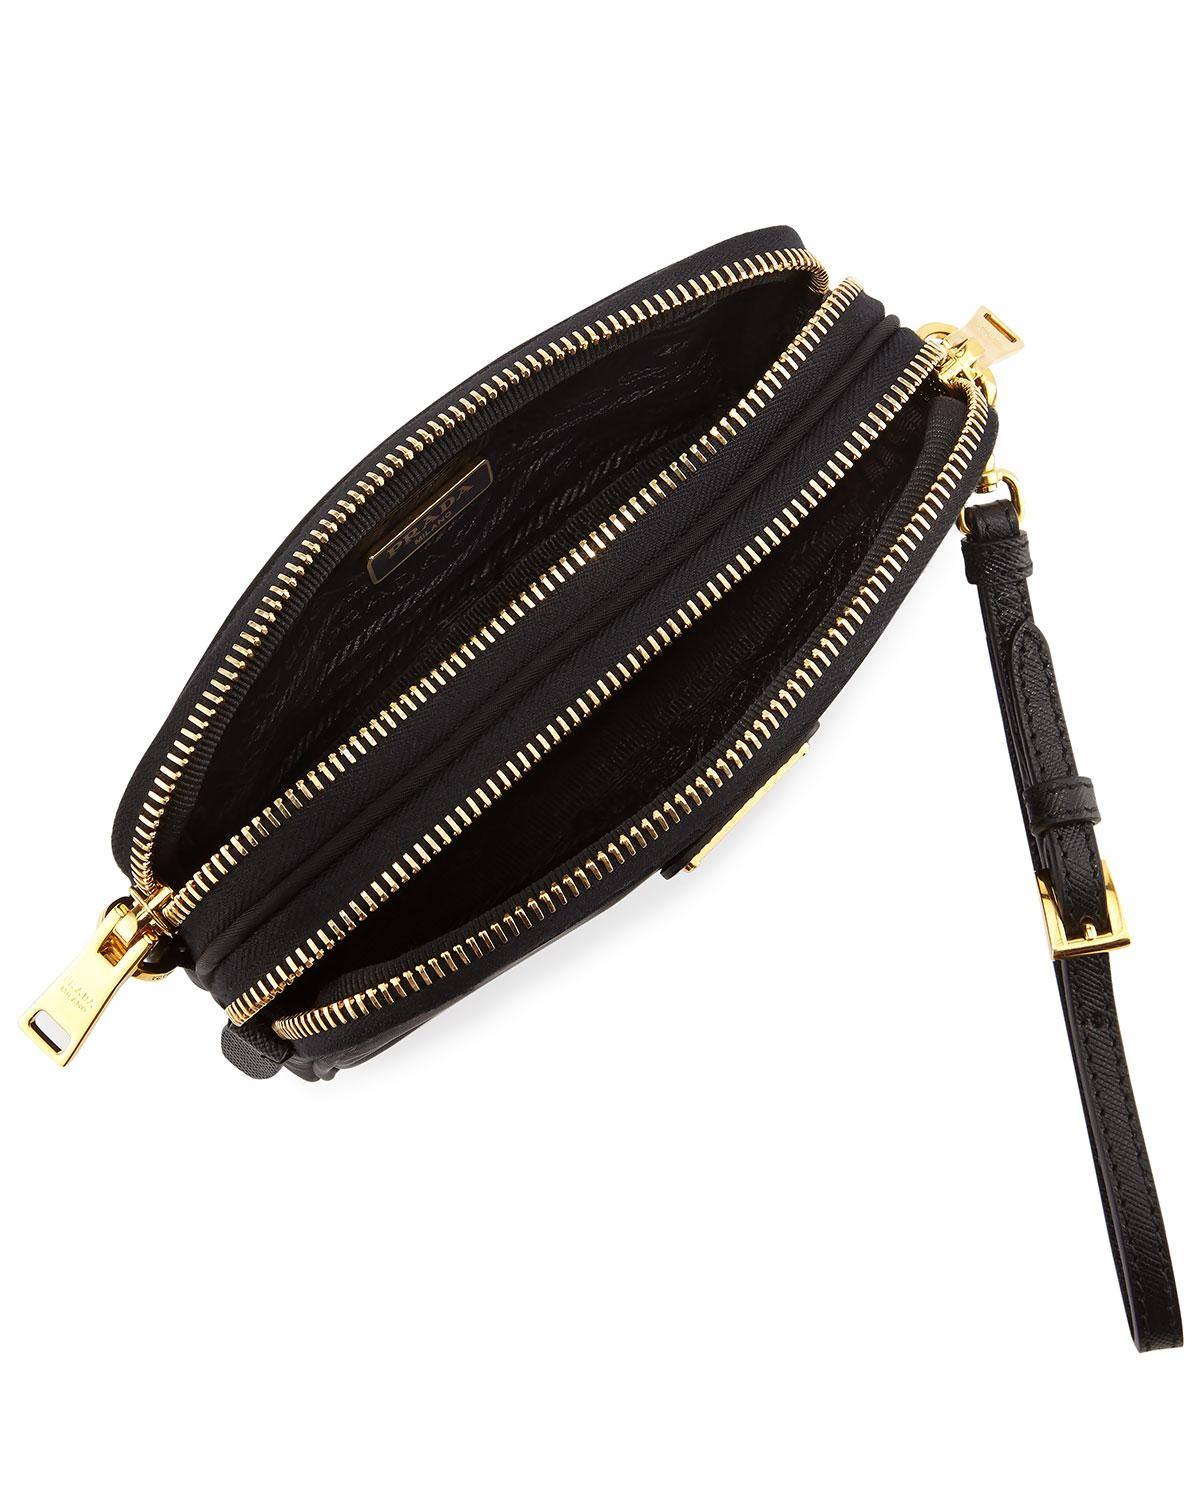 f6c0d470aae490 ... discount code for review of the prada sale lyst prada nylon double  compartment crossbody bag in